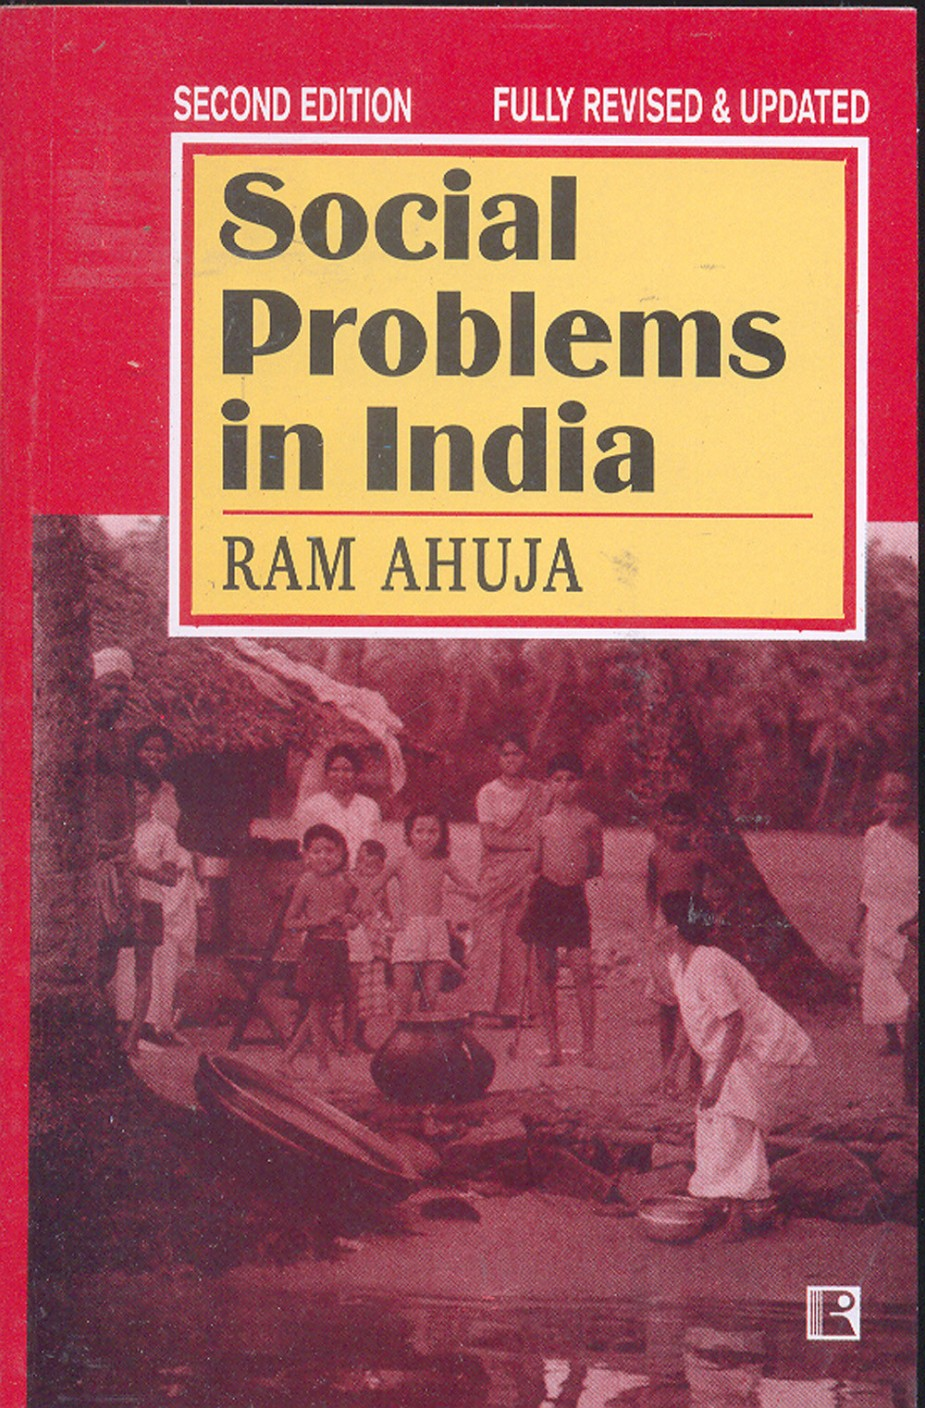 india problems Major problems in india include various human rights issues, corruption in government, widespread poverty, societal violence based on religion, an overburdened judicial system, so-called.